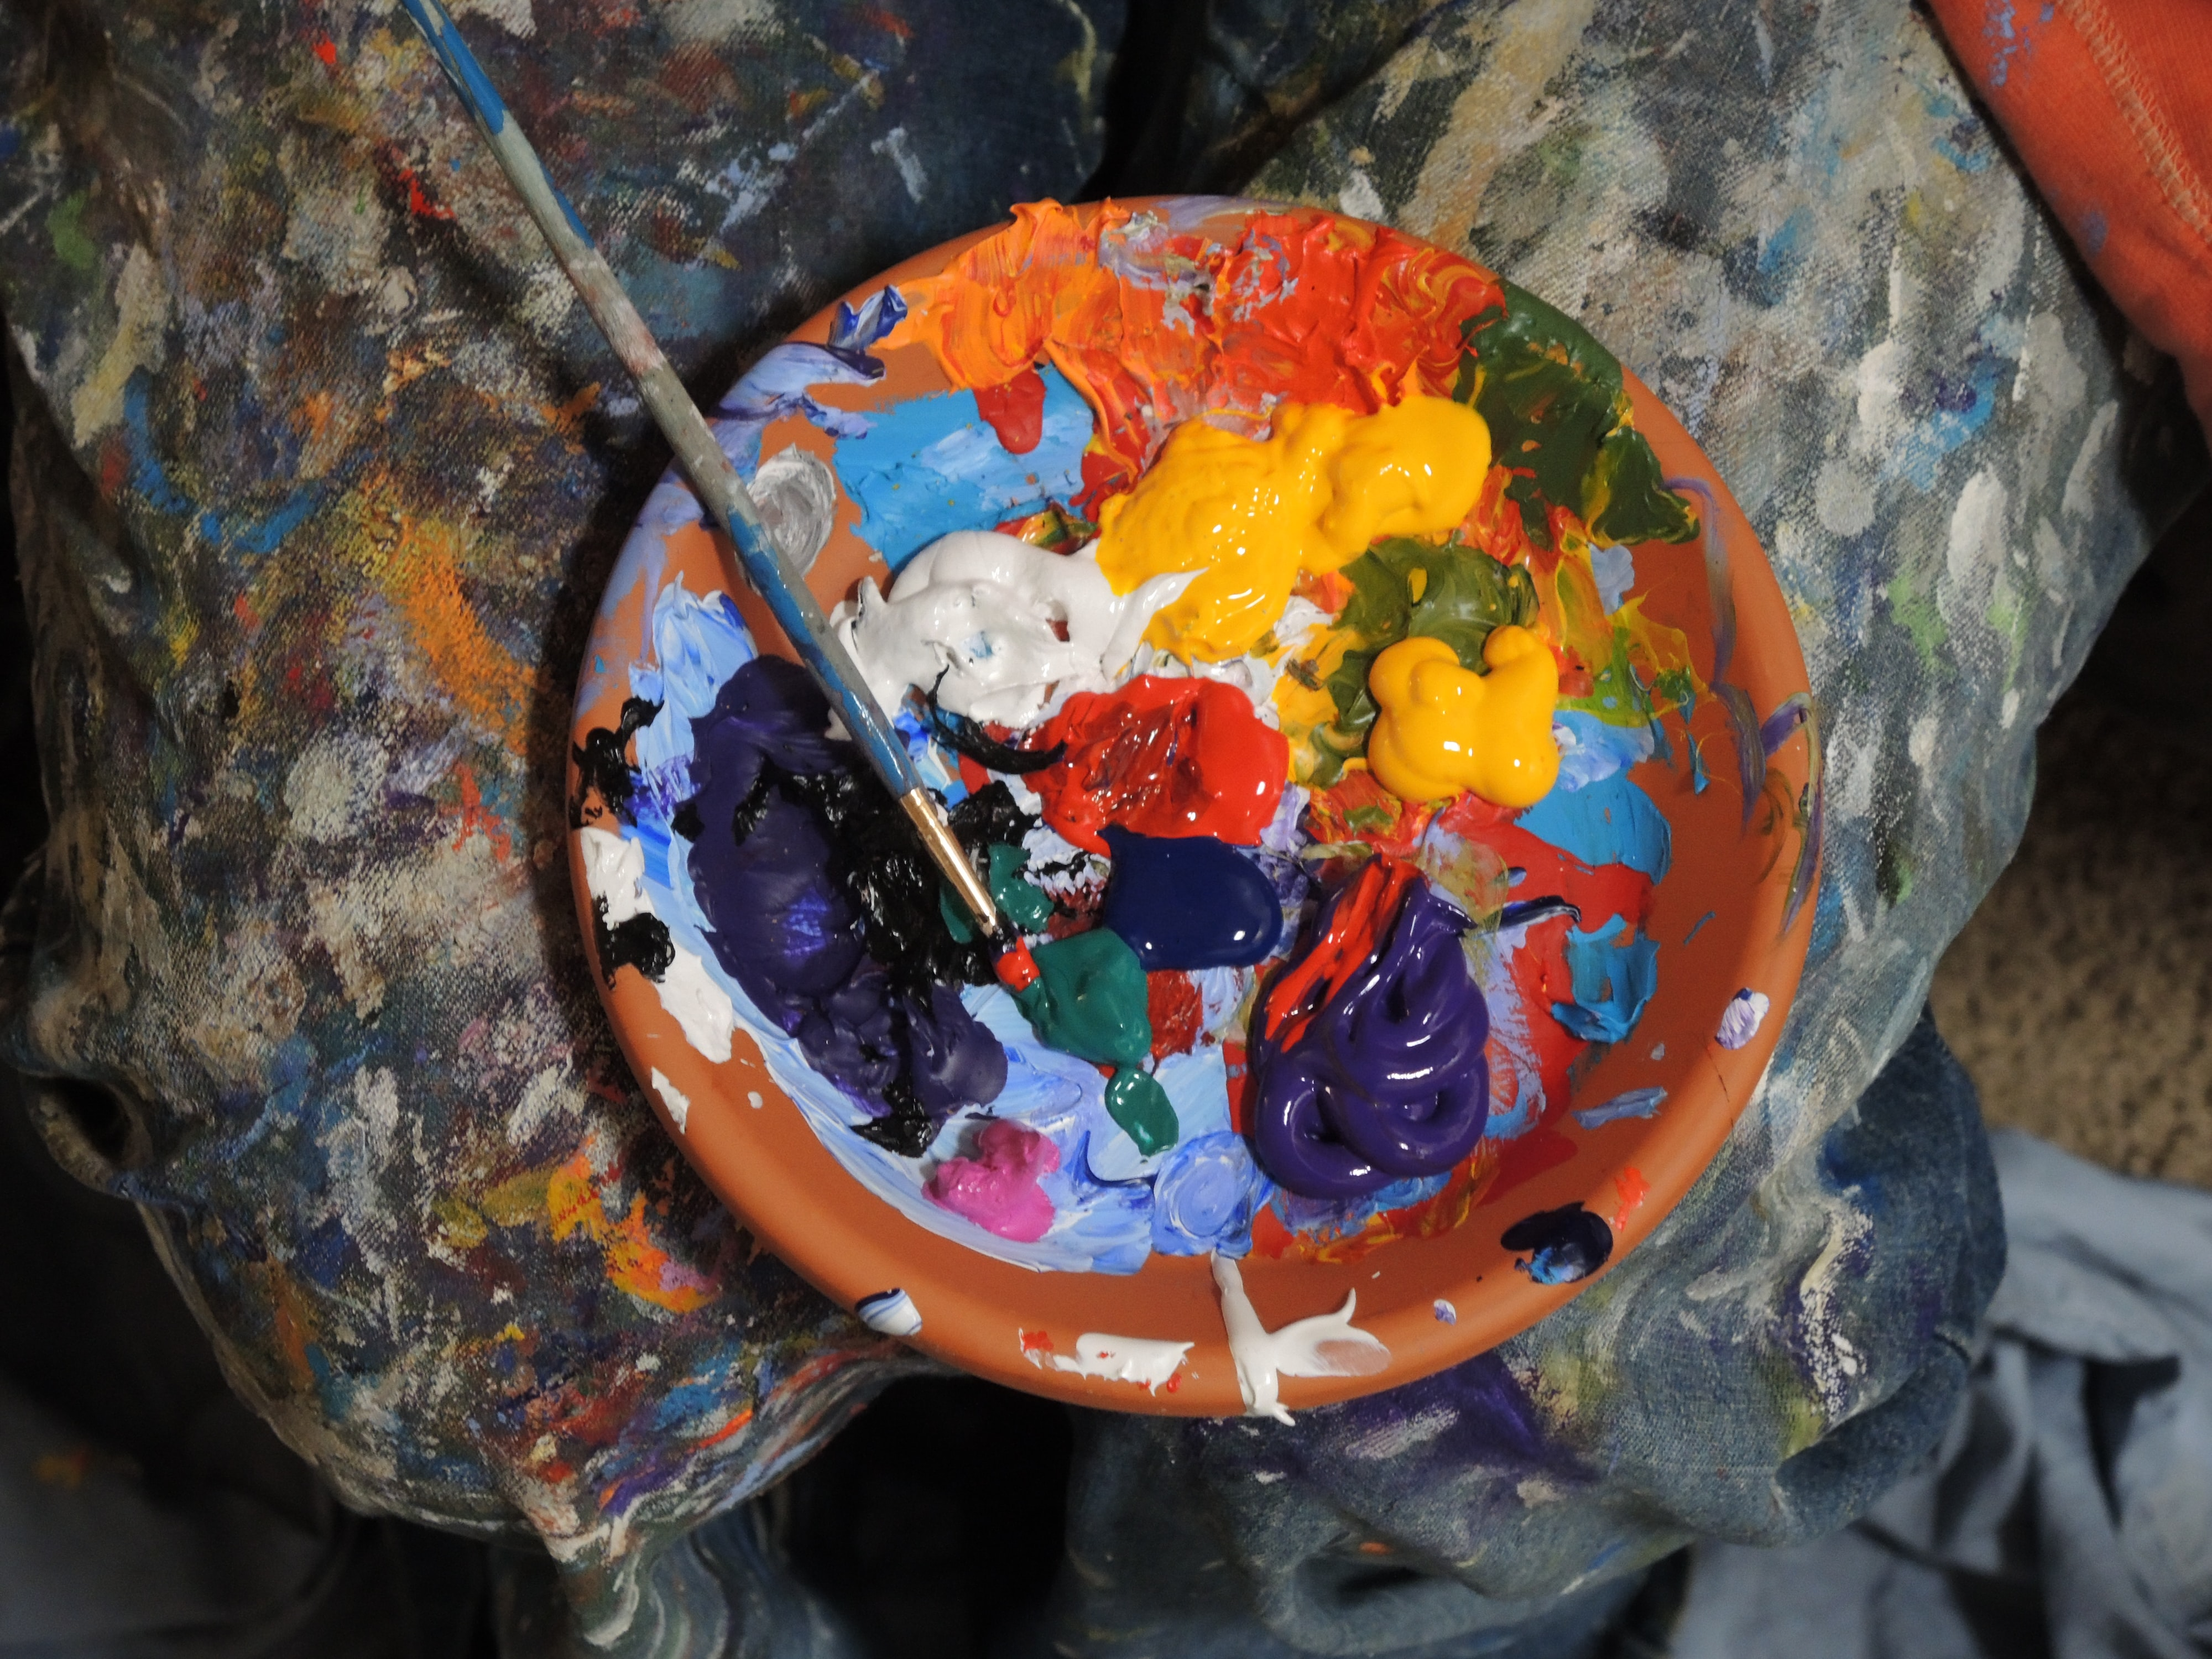 Mix of paints in a orange bowl with paintbrush sit on a messy background